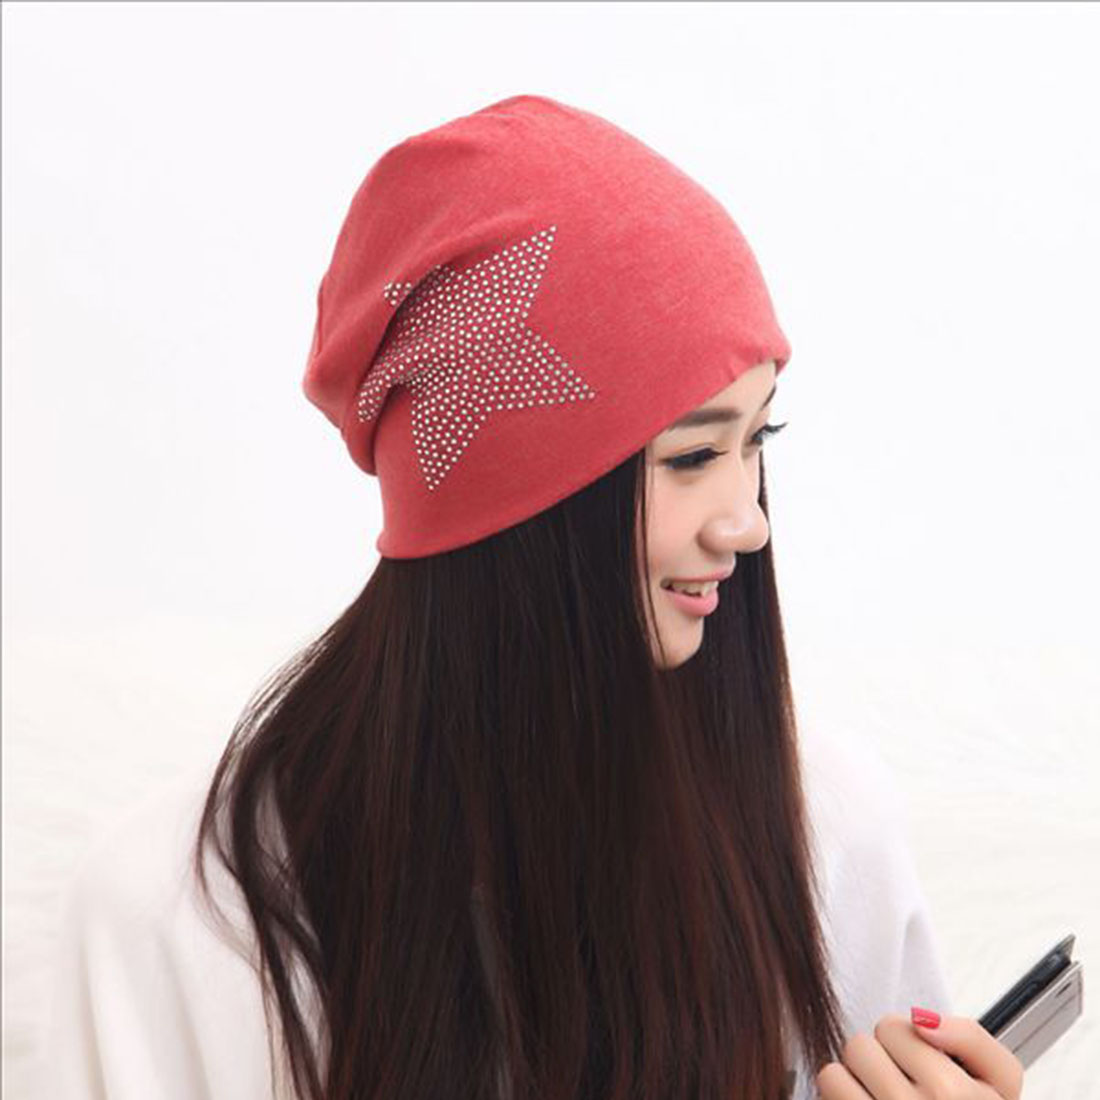 2017 Classic Style Fashion New Knit Baggy Beanie Hat with Star Female Warm Winter Hats for Girls Women Beanies Bonnet Head Cap цены онлайн